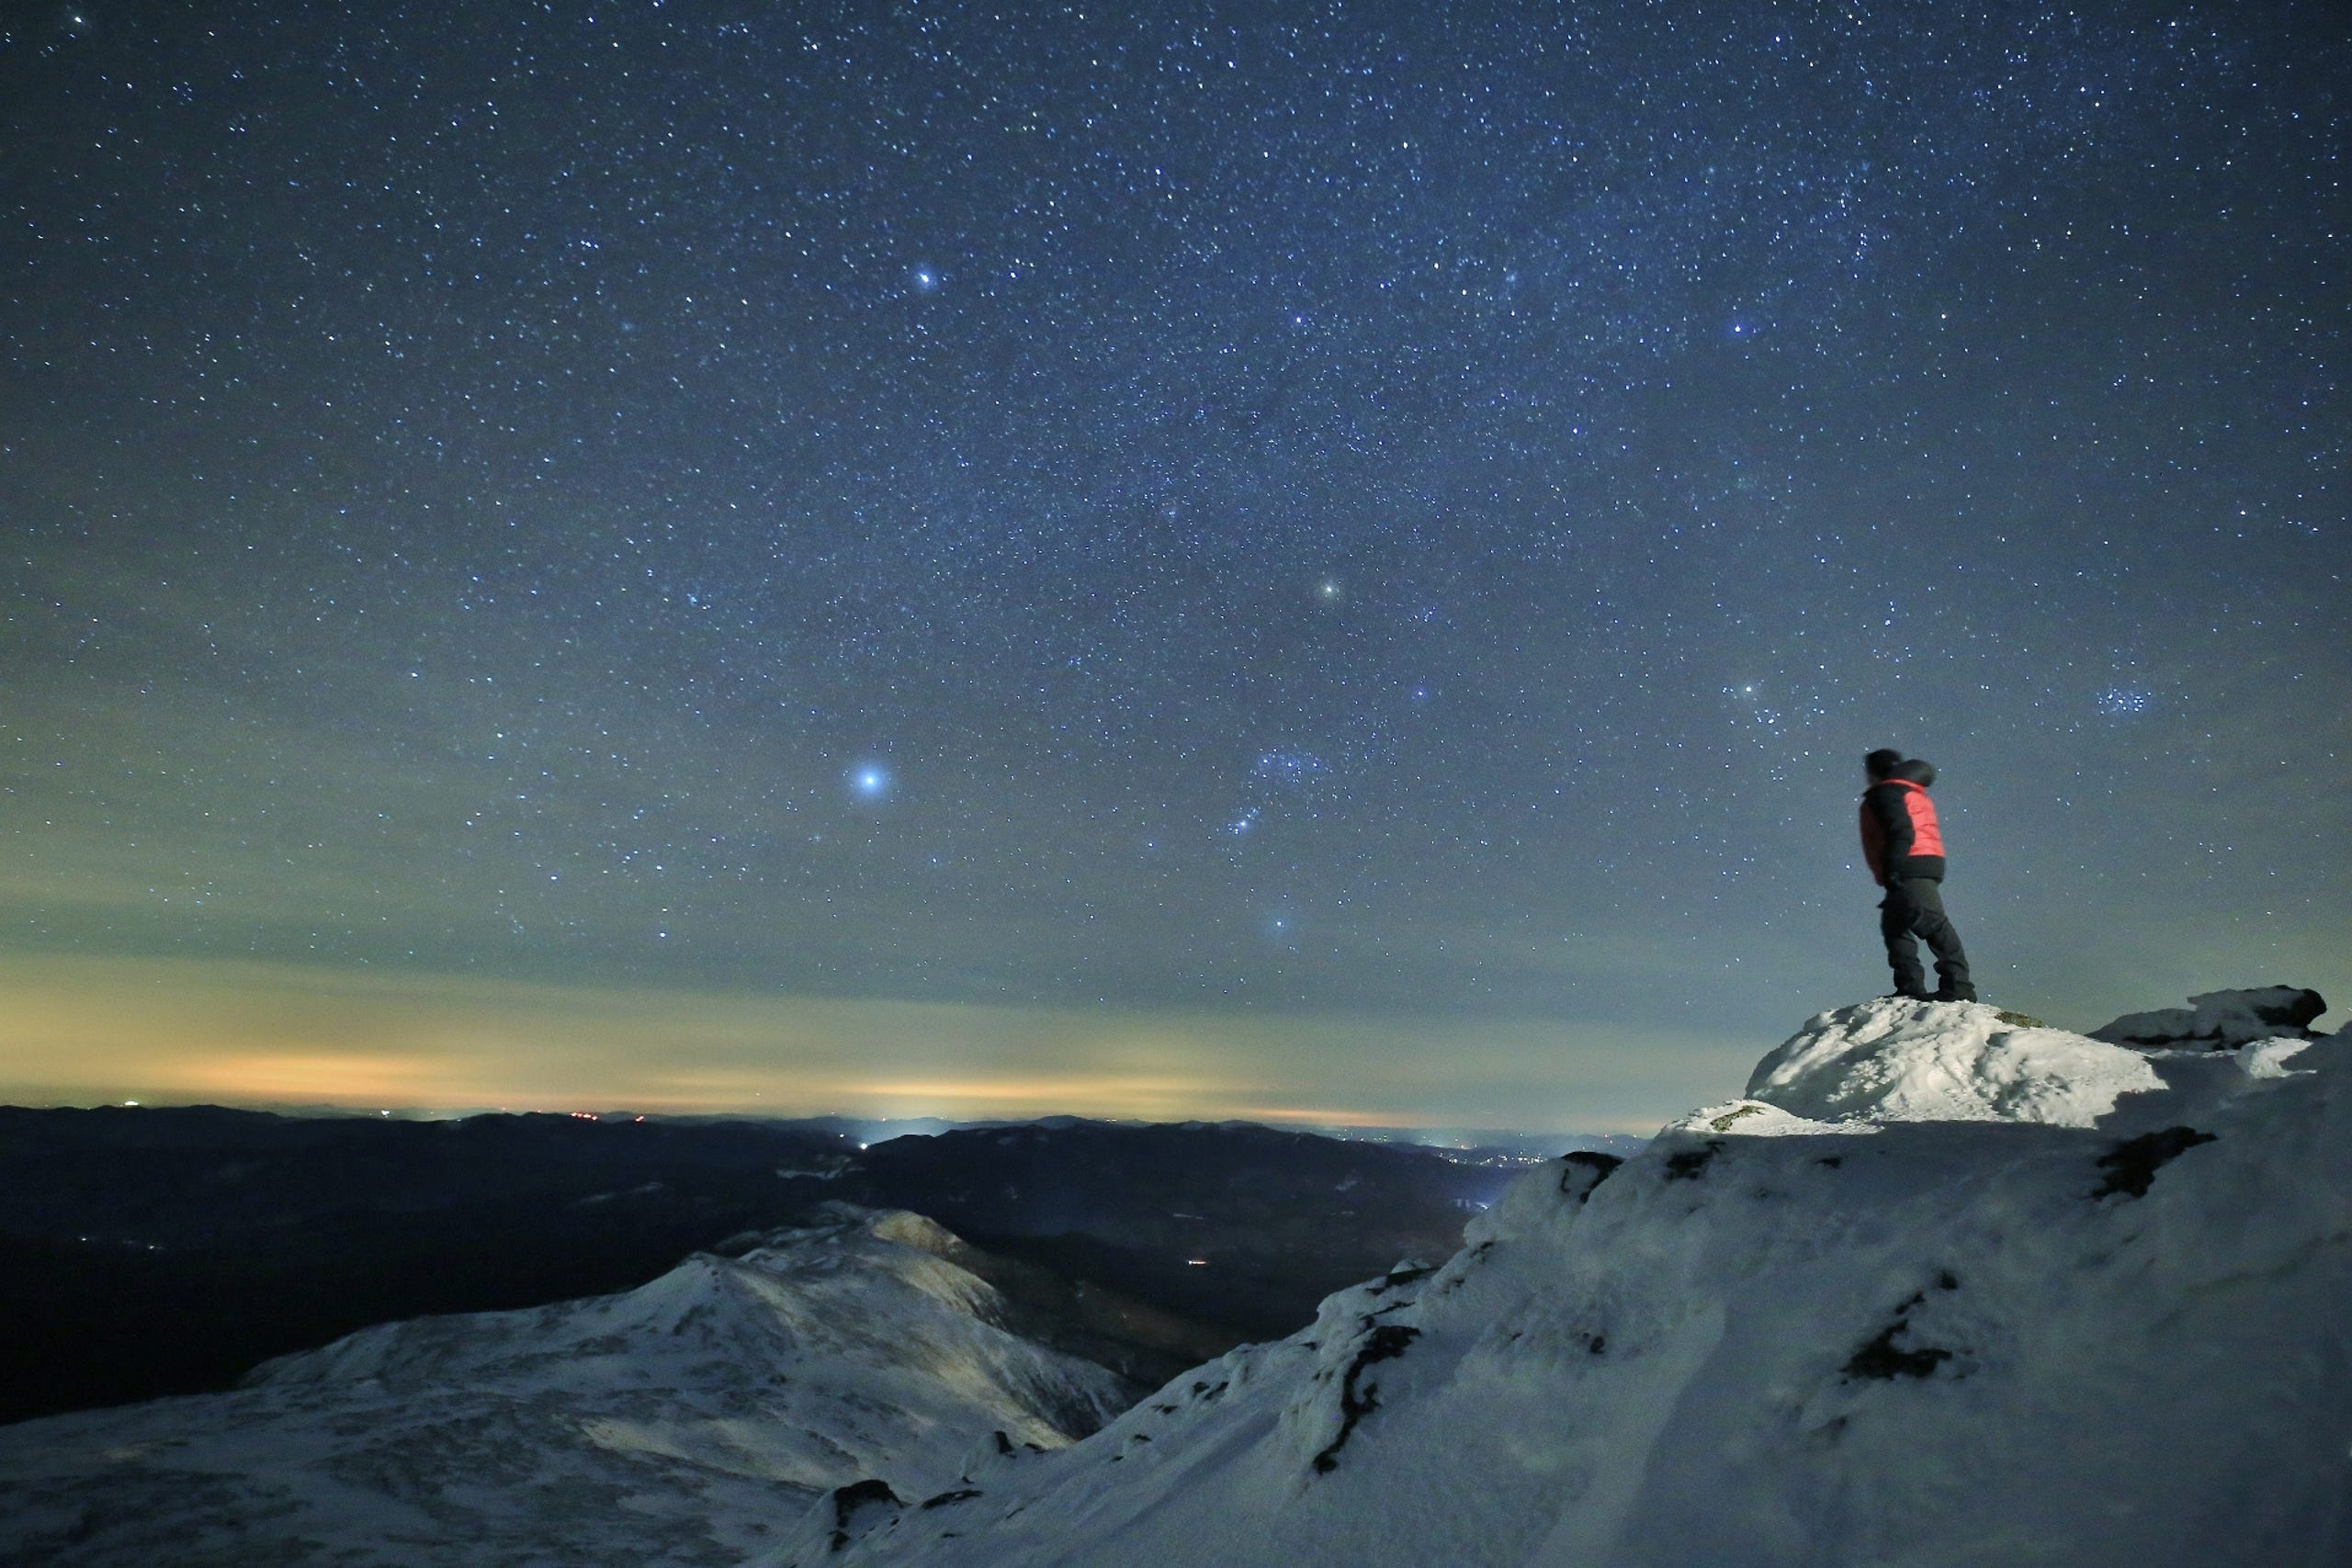 <strong>Mount Washington, New Hampshire:</strong> The weather can be menacing atop Mt. Washington but on a clear night, the views are worth the trip, stargazers say.